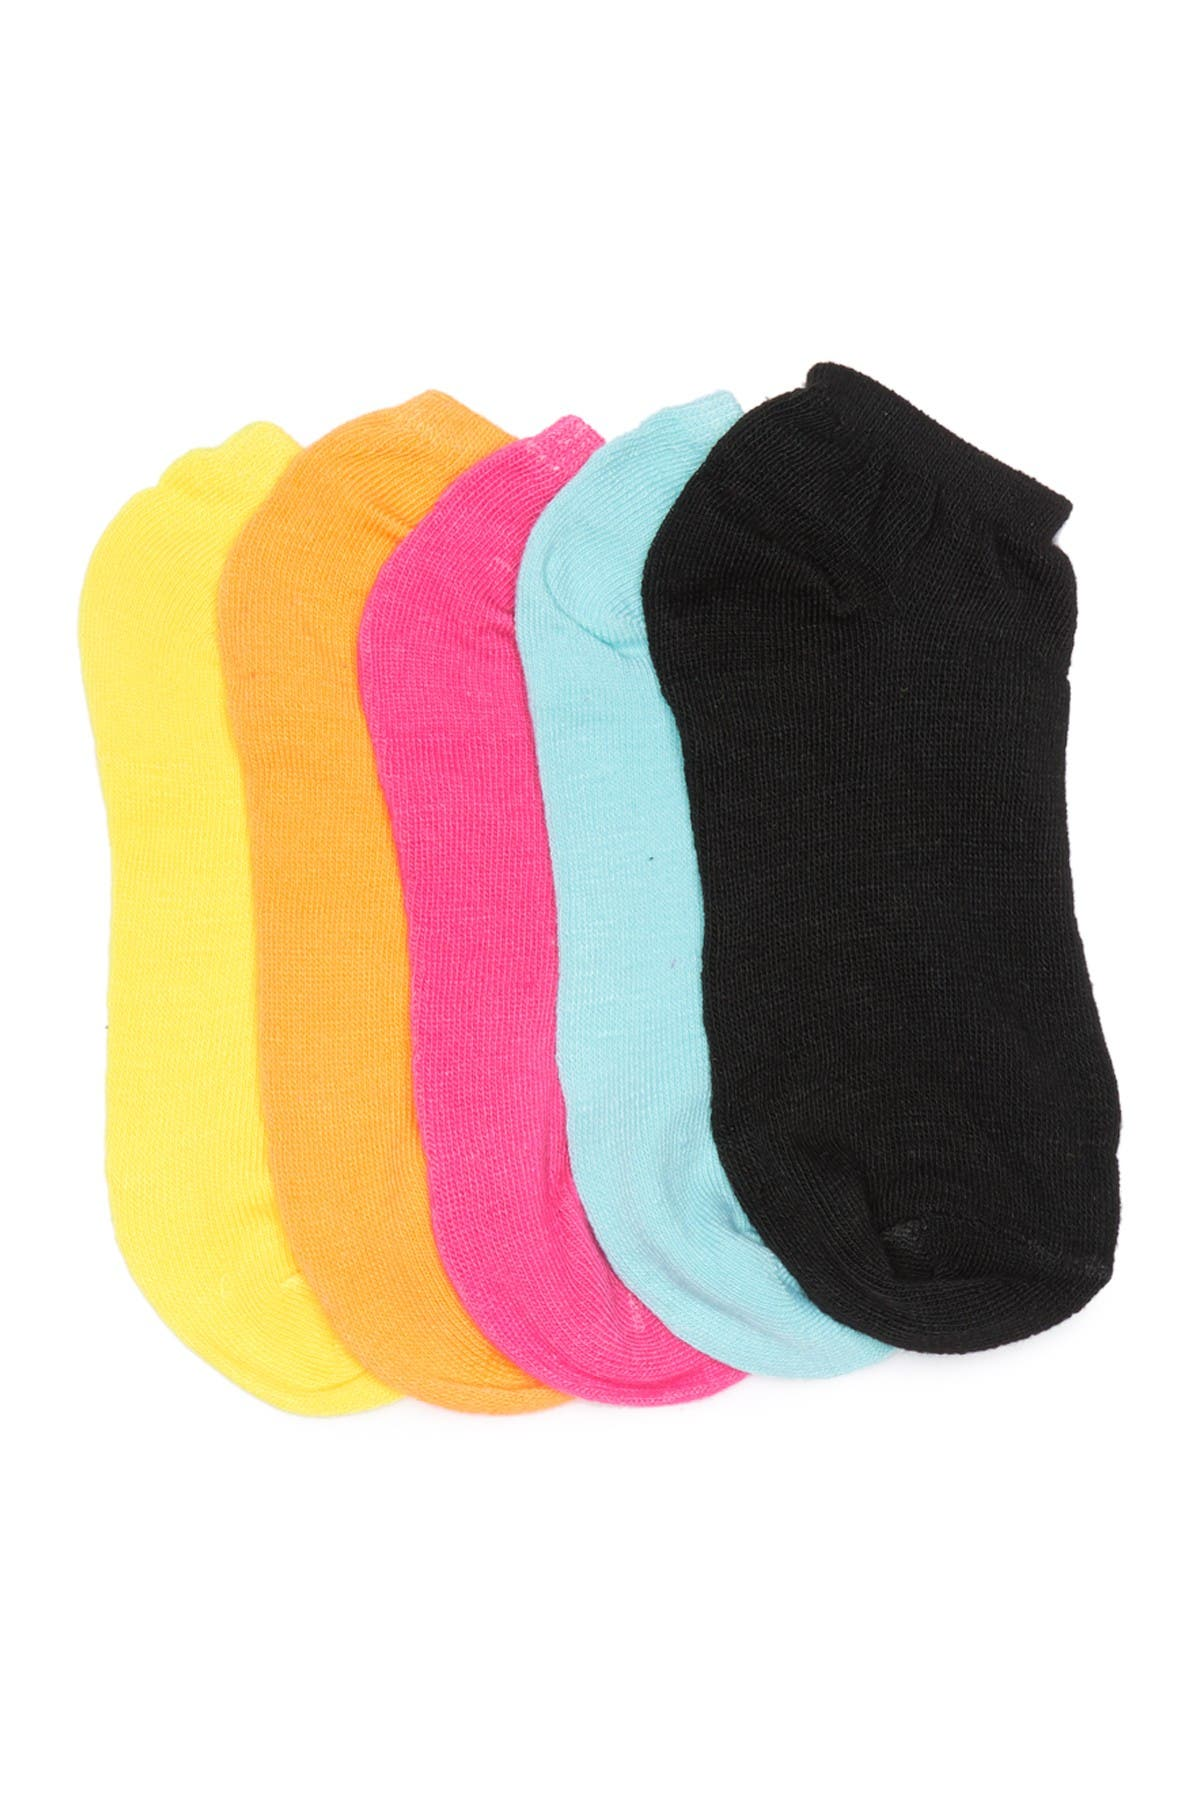 Image of Stems Assorted Color Ankle Socks - Pack of 5